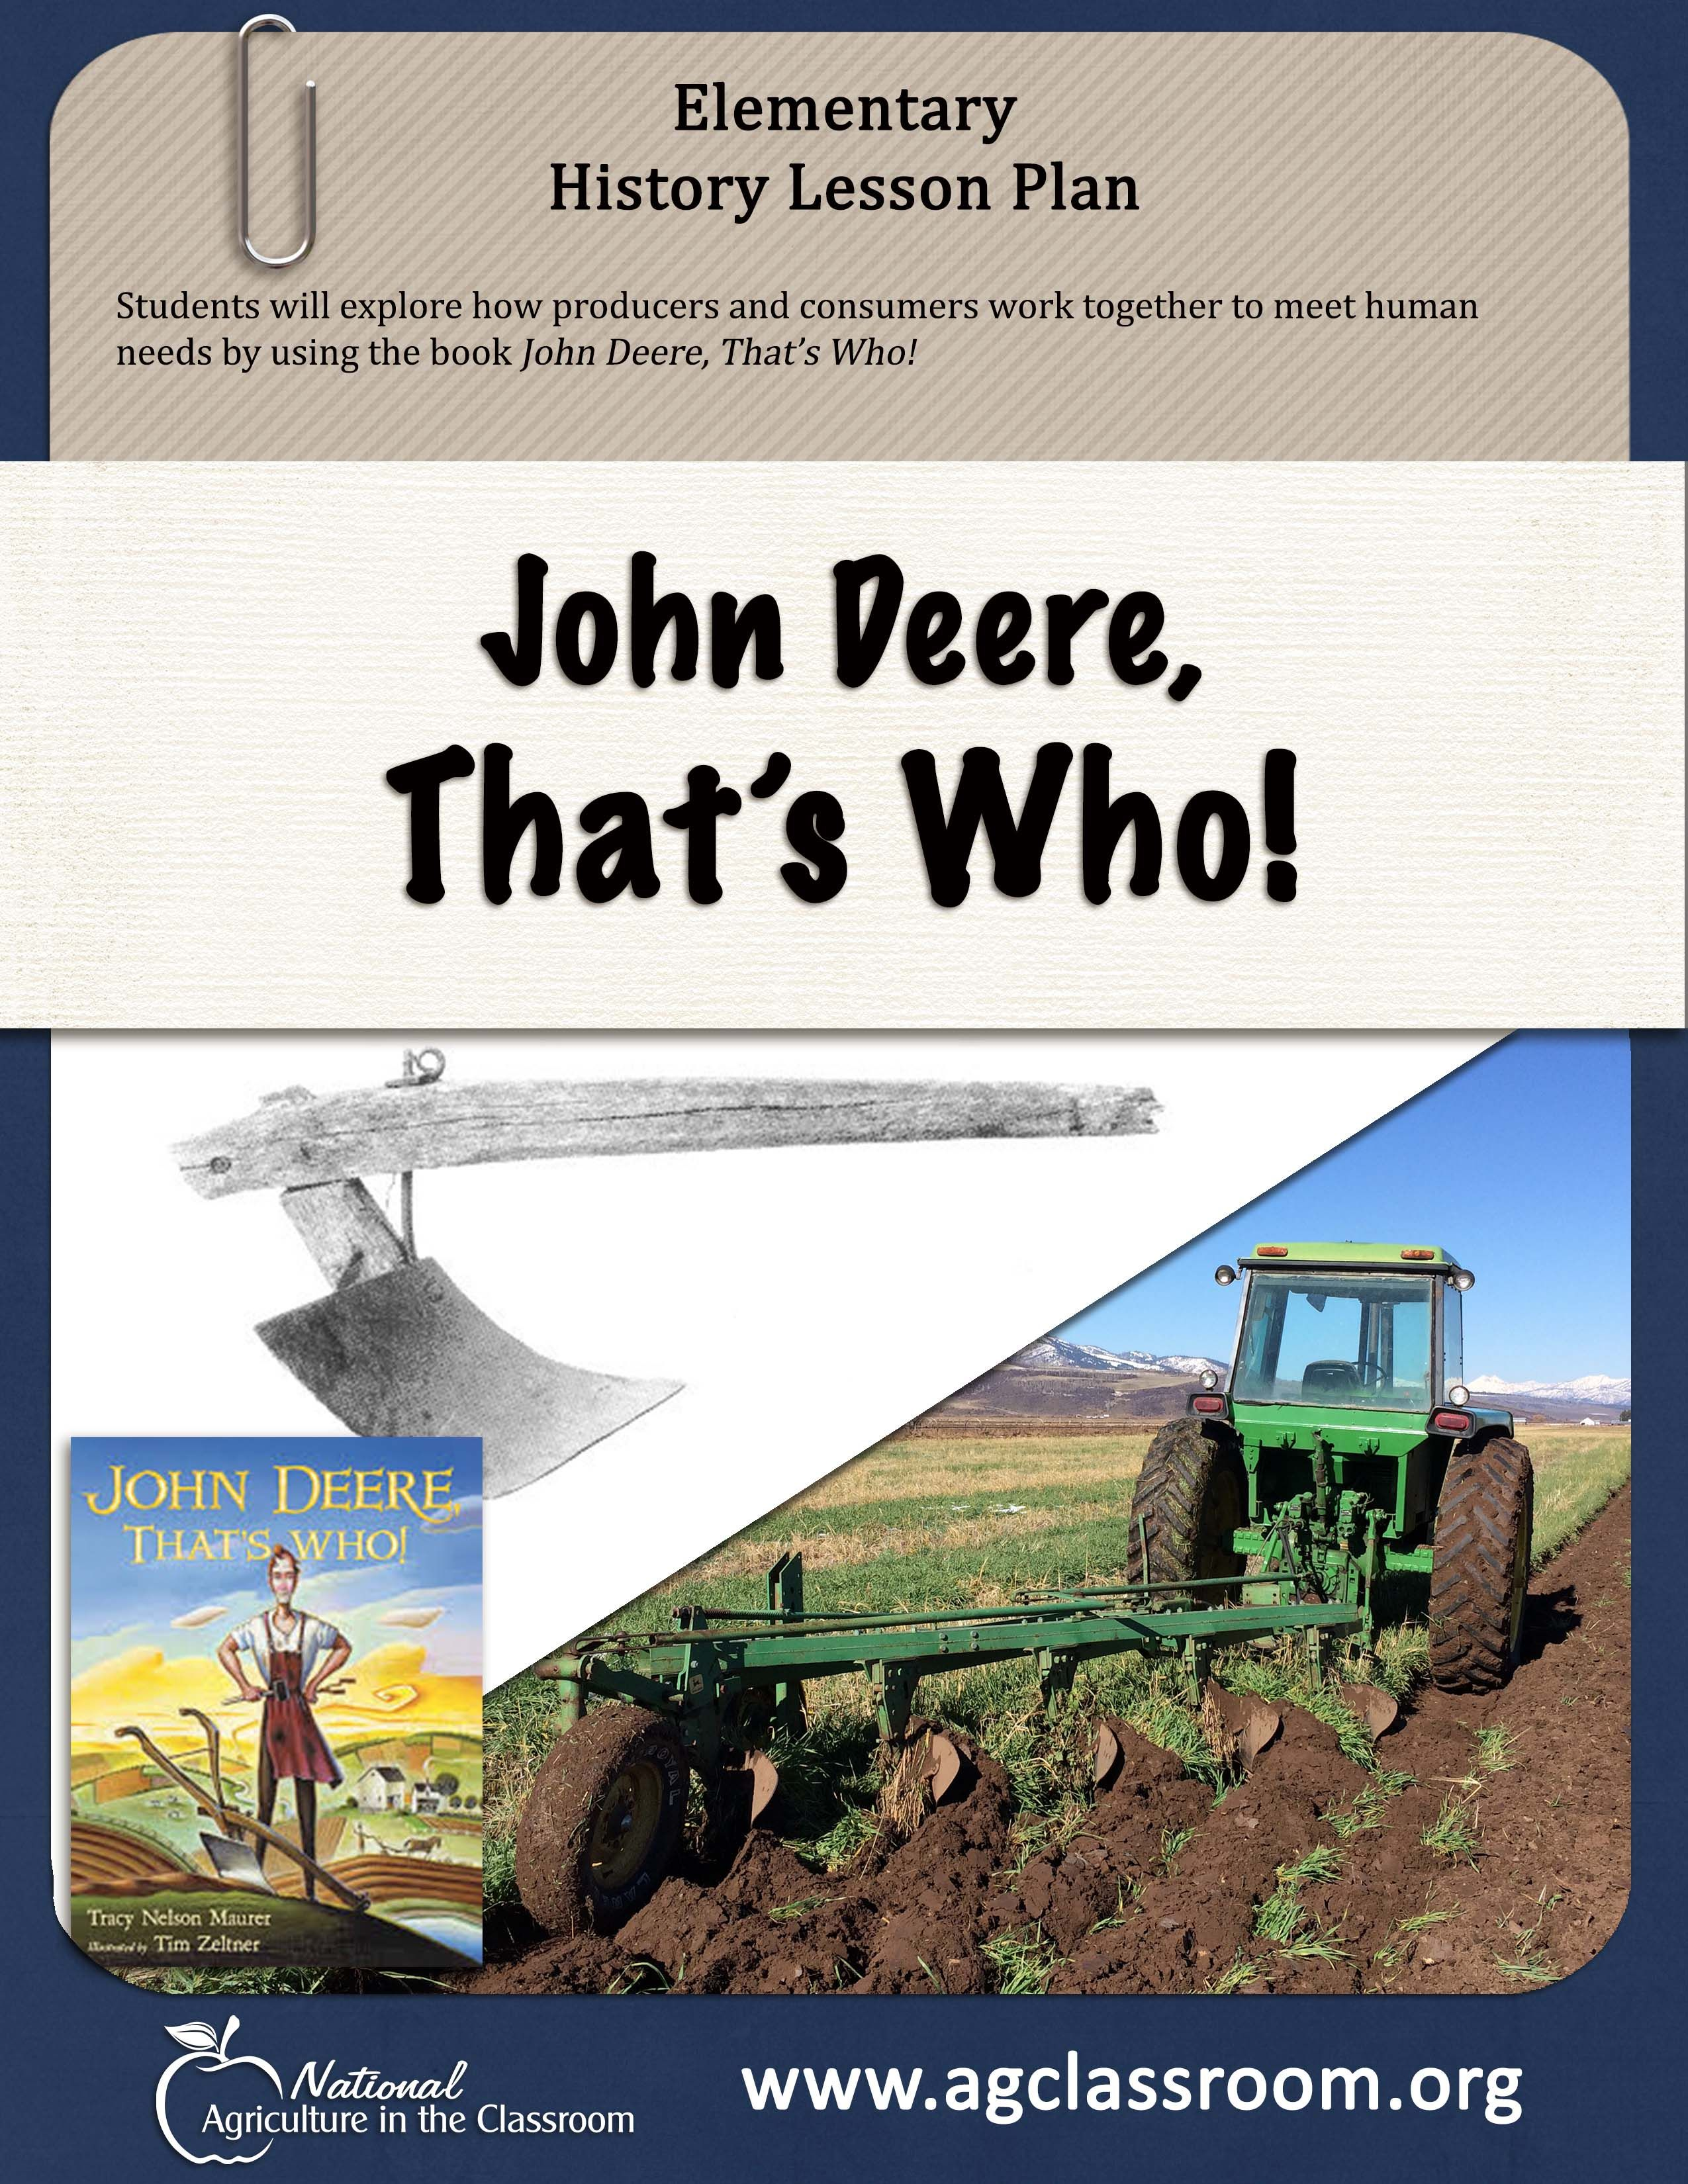 hight resolution of elementary lesson plan teaching about producers and consumers using john deere a blacksmith who invented the the first steel plow as an example